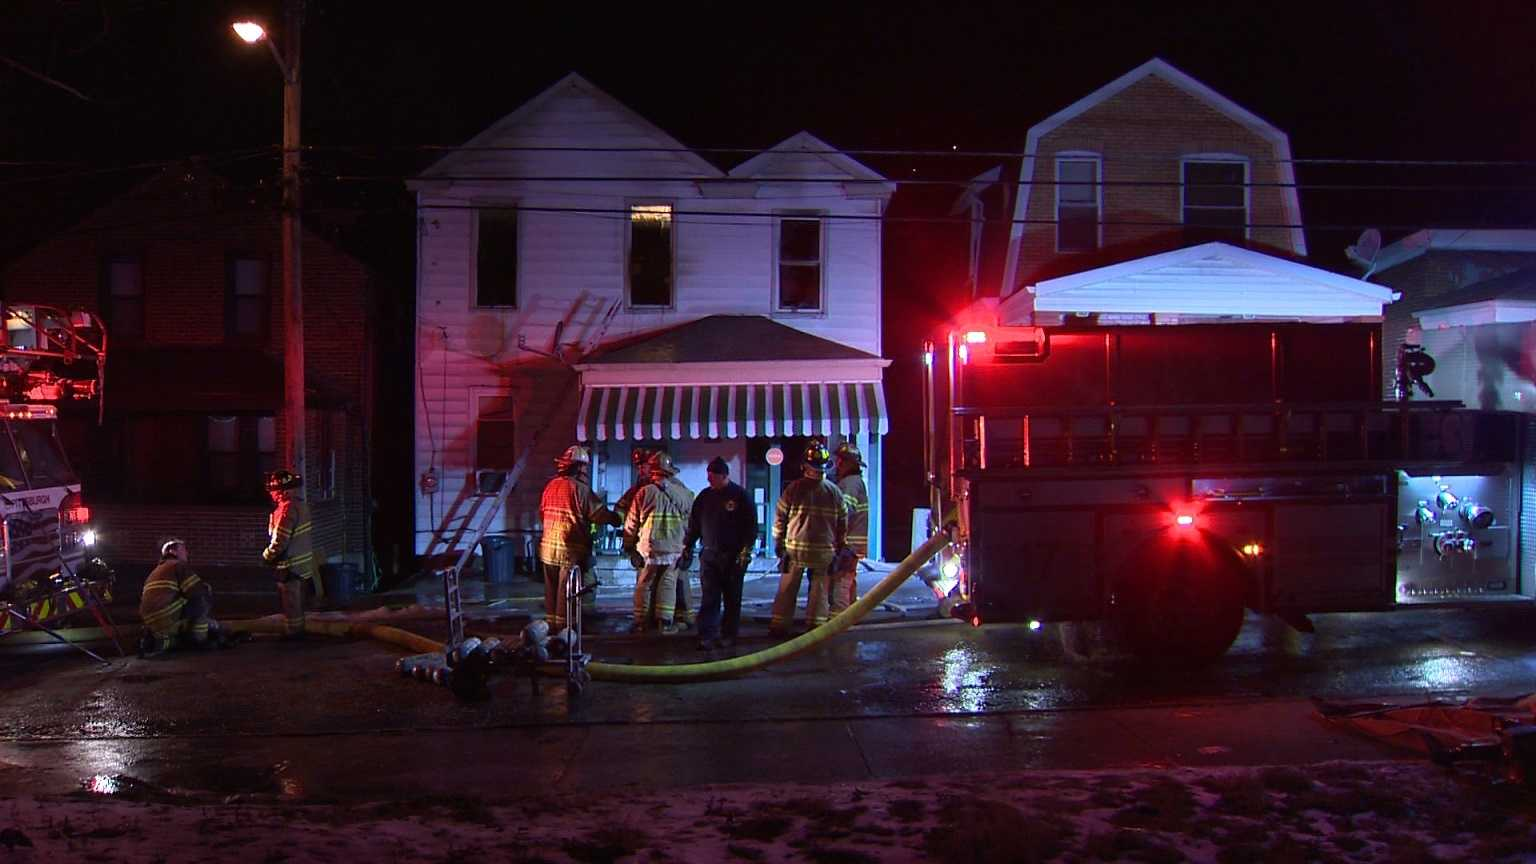 No one was injured during a fire in East Hills late Friday night.